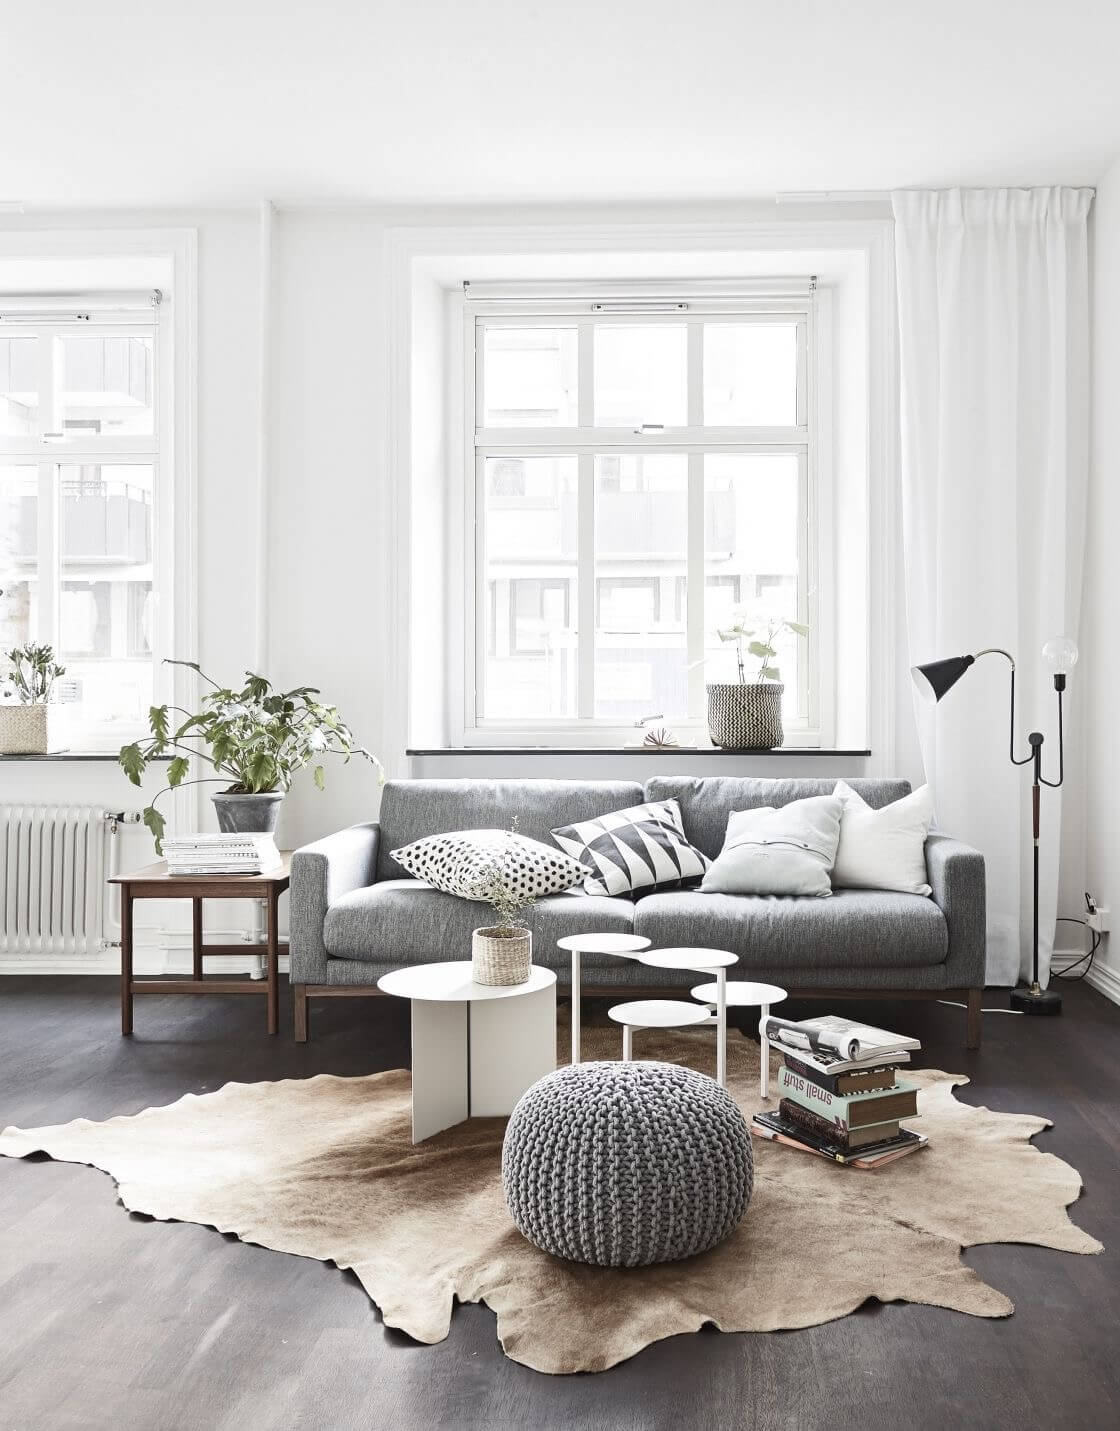 25 Best Small Living Room Decor And Design Ideas For 2019: 26 Best Modern Living Room Decorating Ideas And Designs